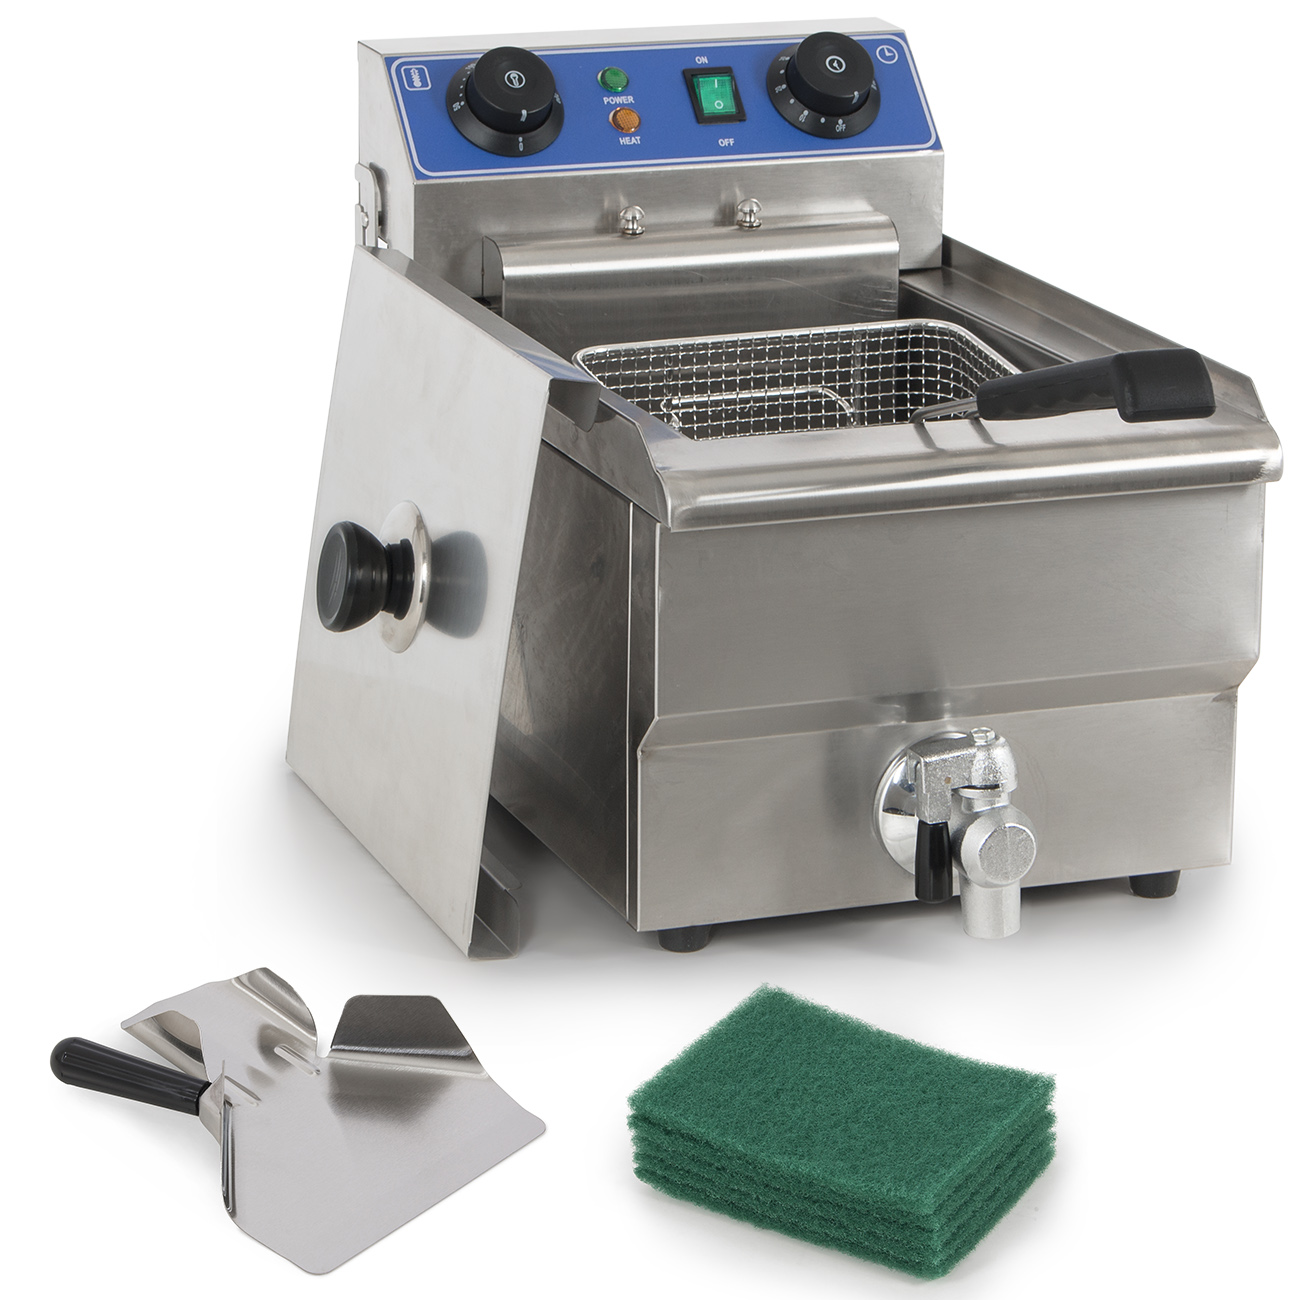 Arksen 1500W Stainless Steel 10 Liter Electric Deep Fryer